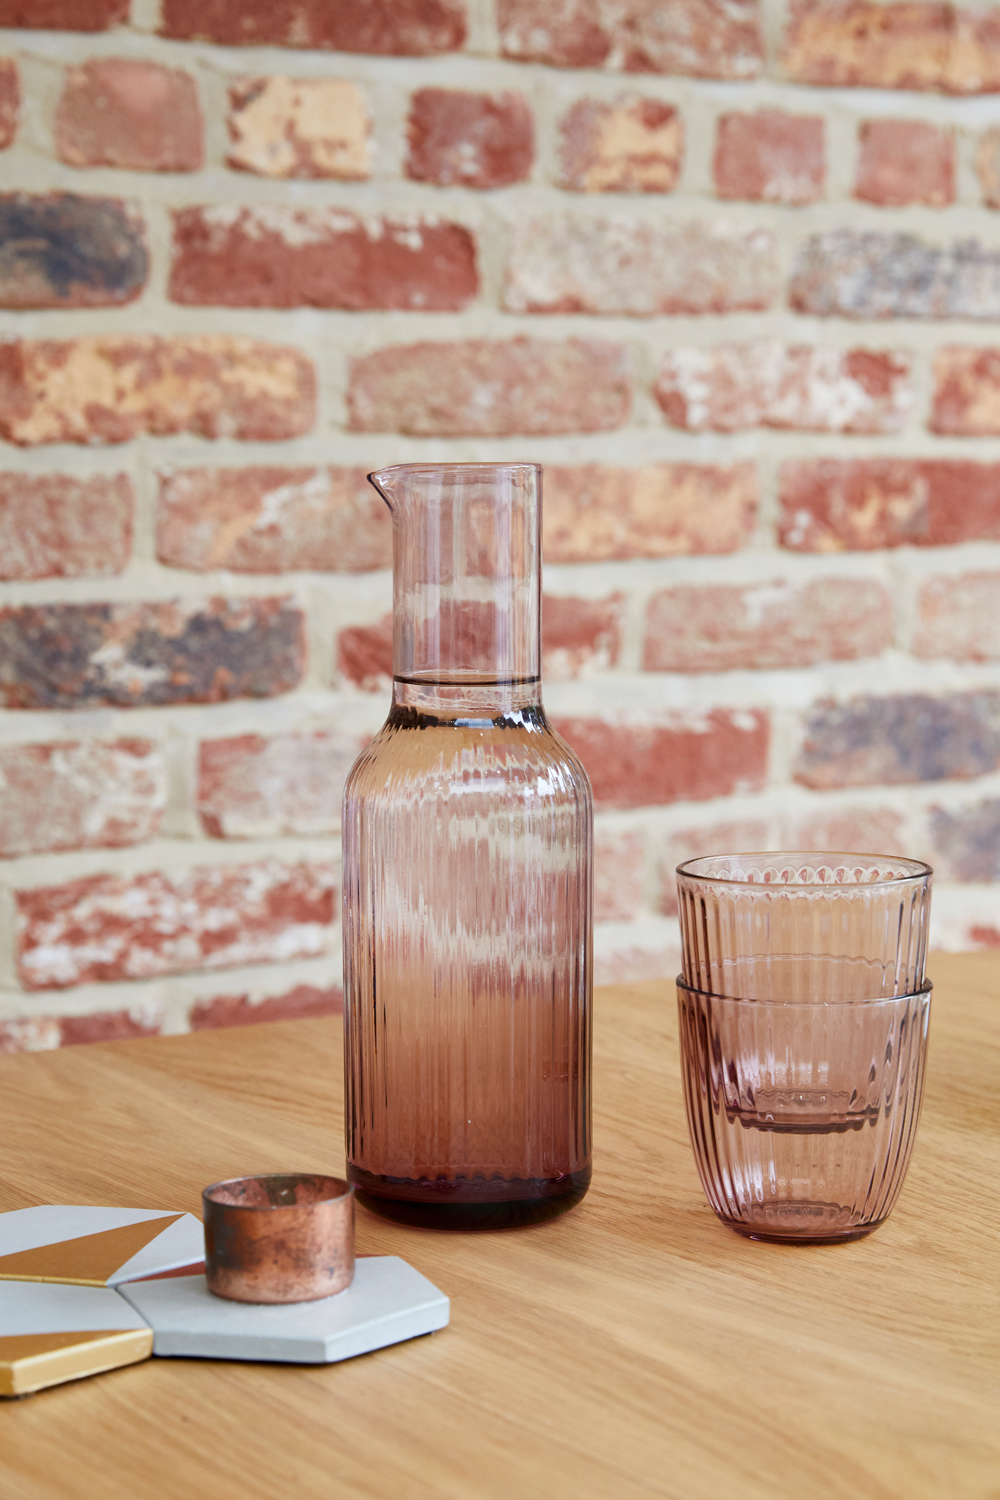 Pink glasses sit on oak dining table with exposed brick backdrop